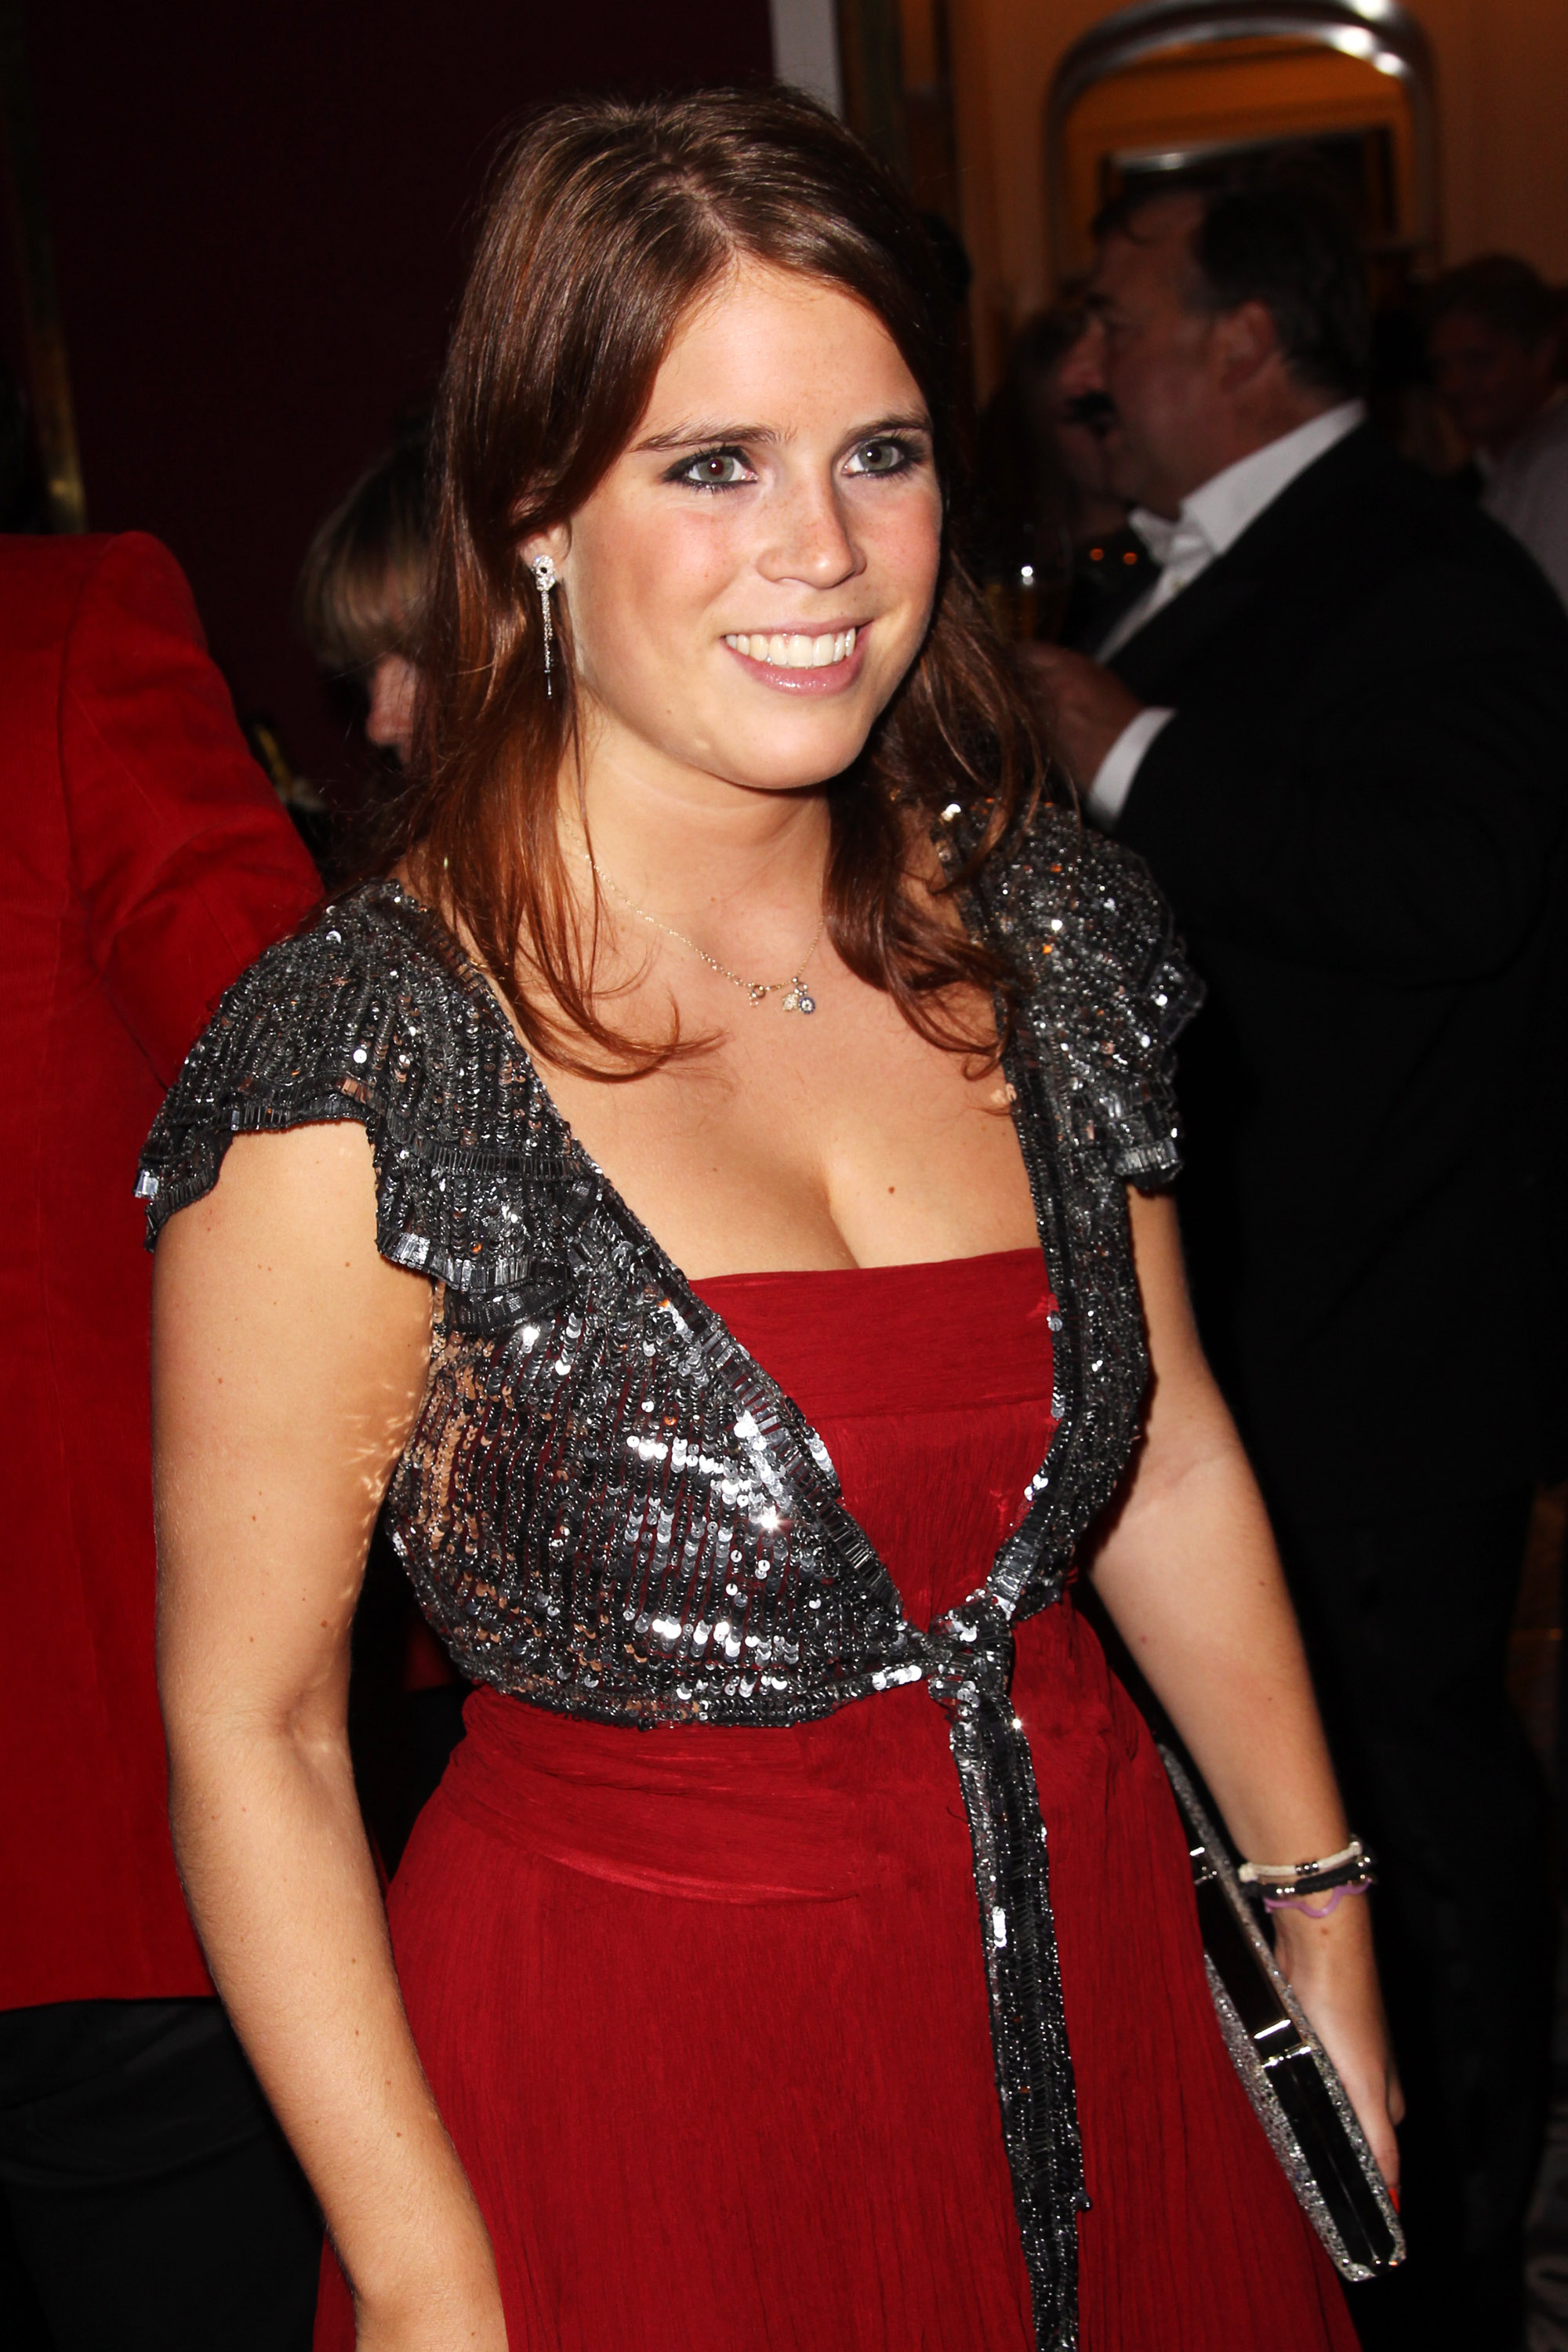 Princess eugenie sexy pics nackt pictures